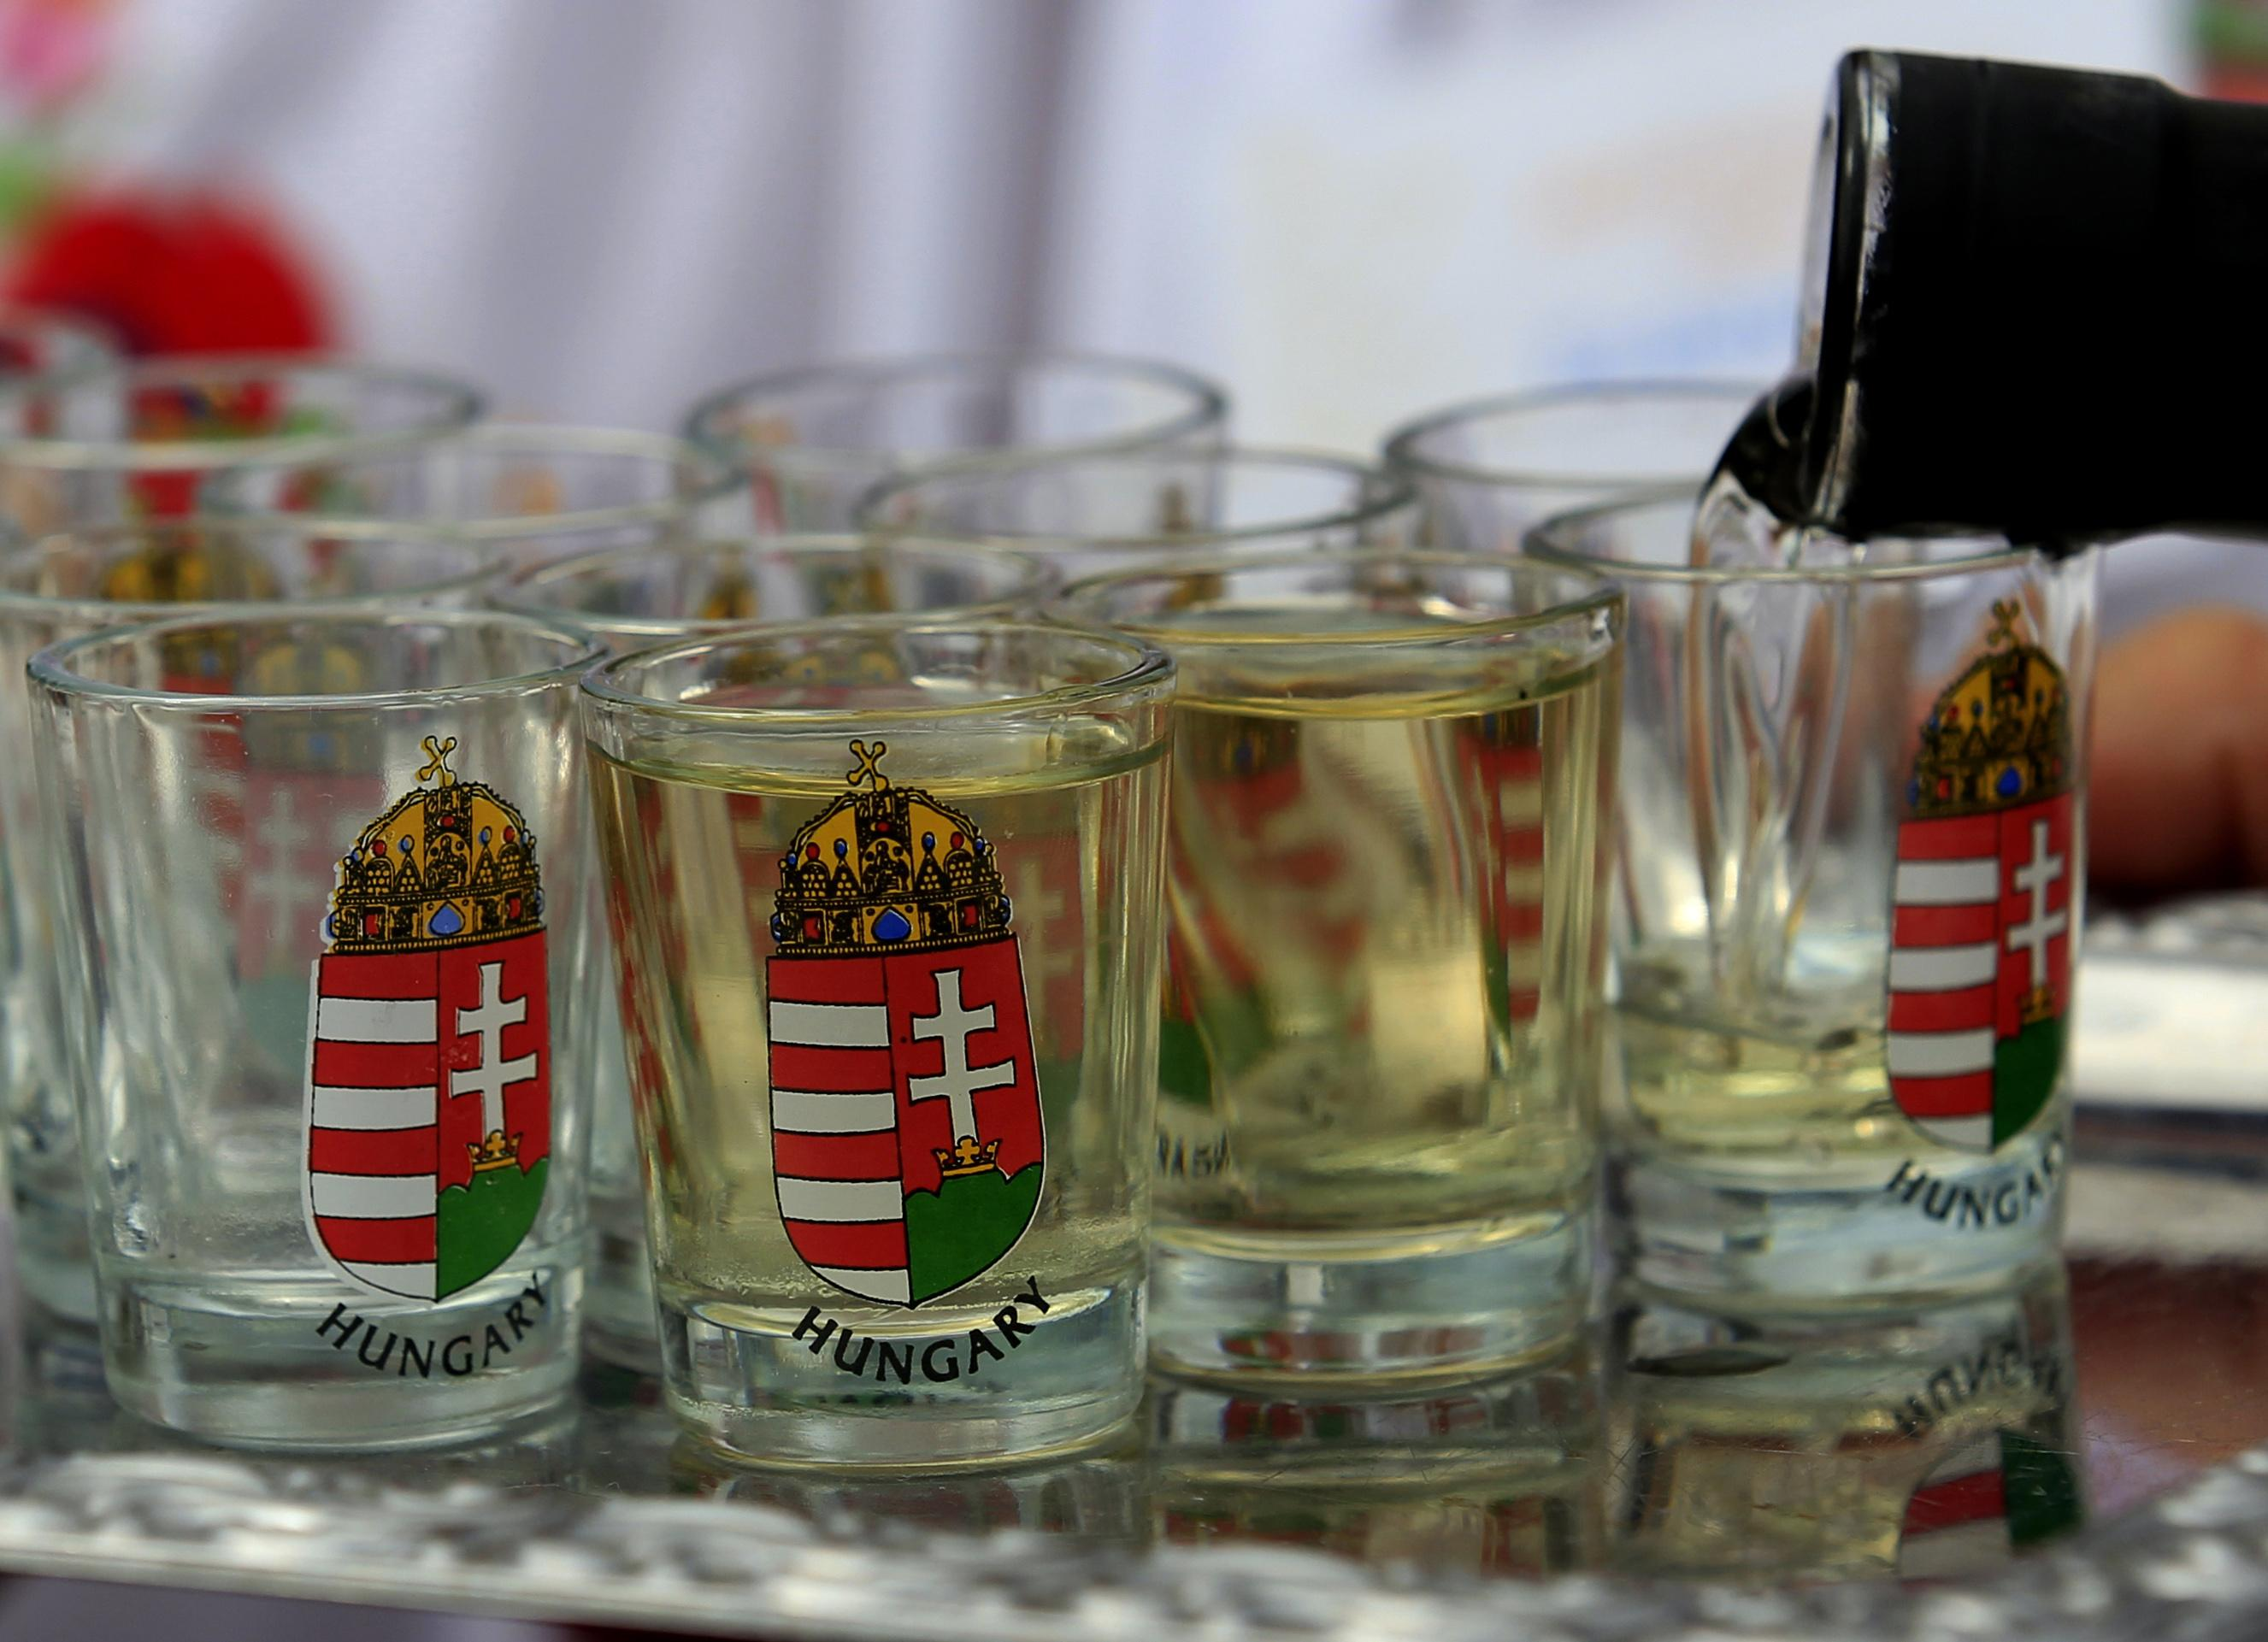 To your health! Romania, Hungary push for brandy rights ahead of EU vote